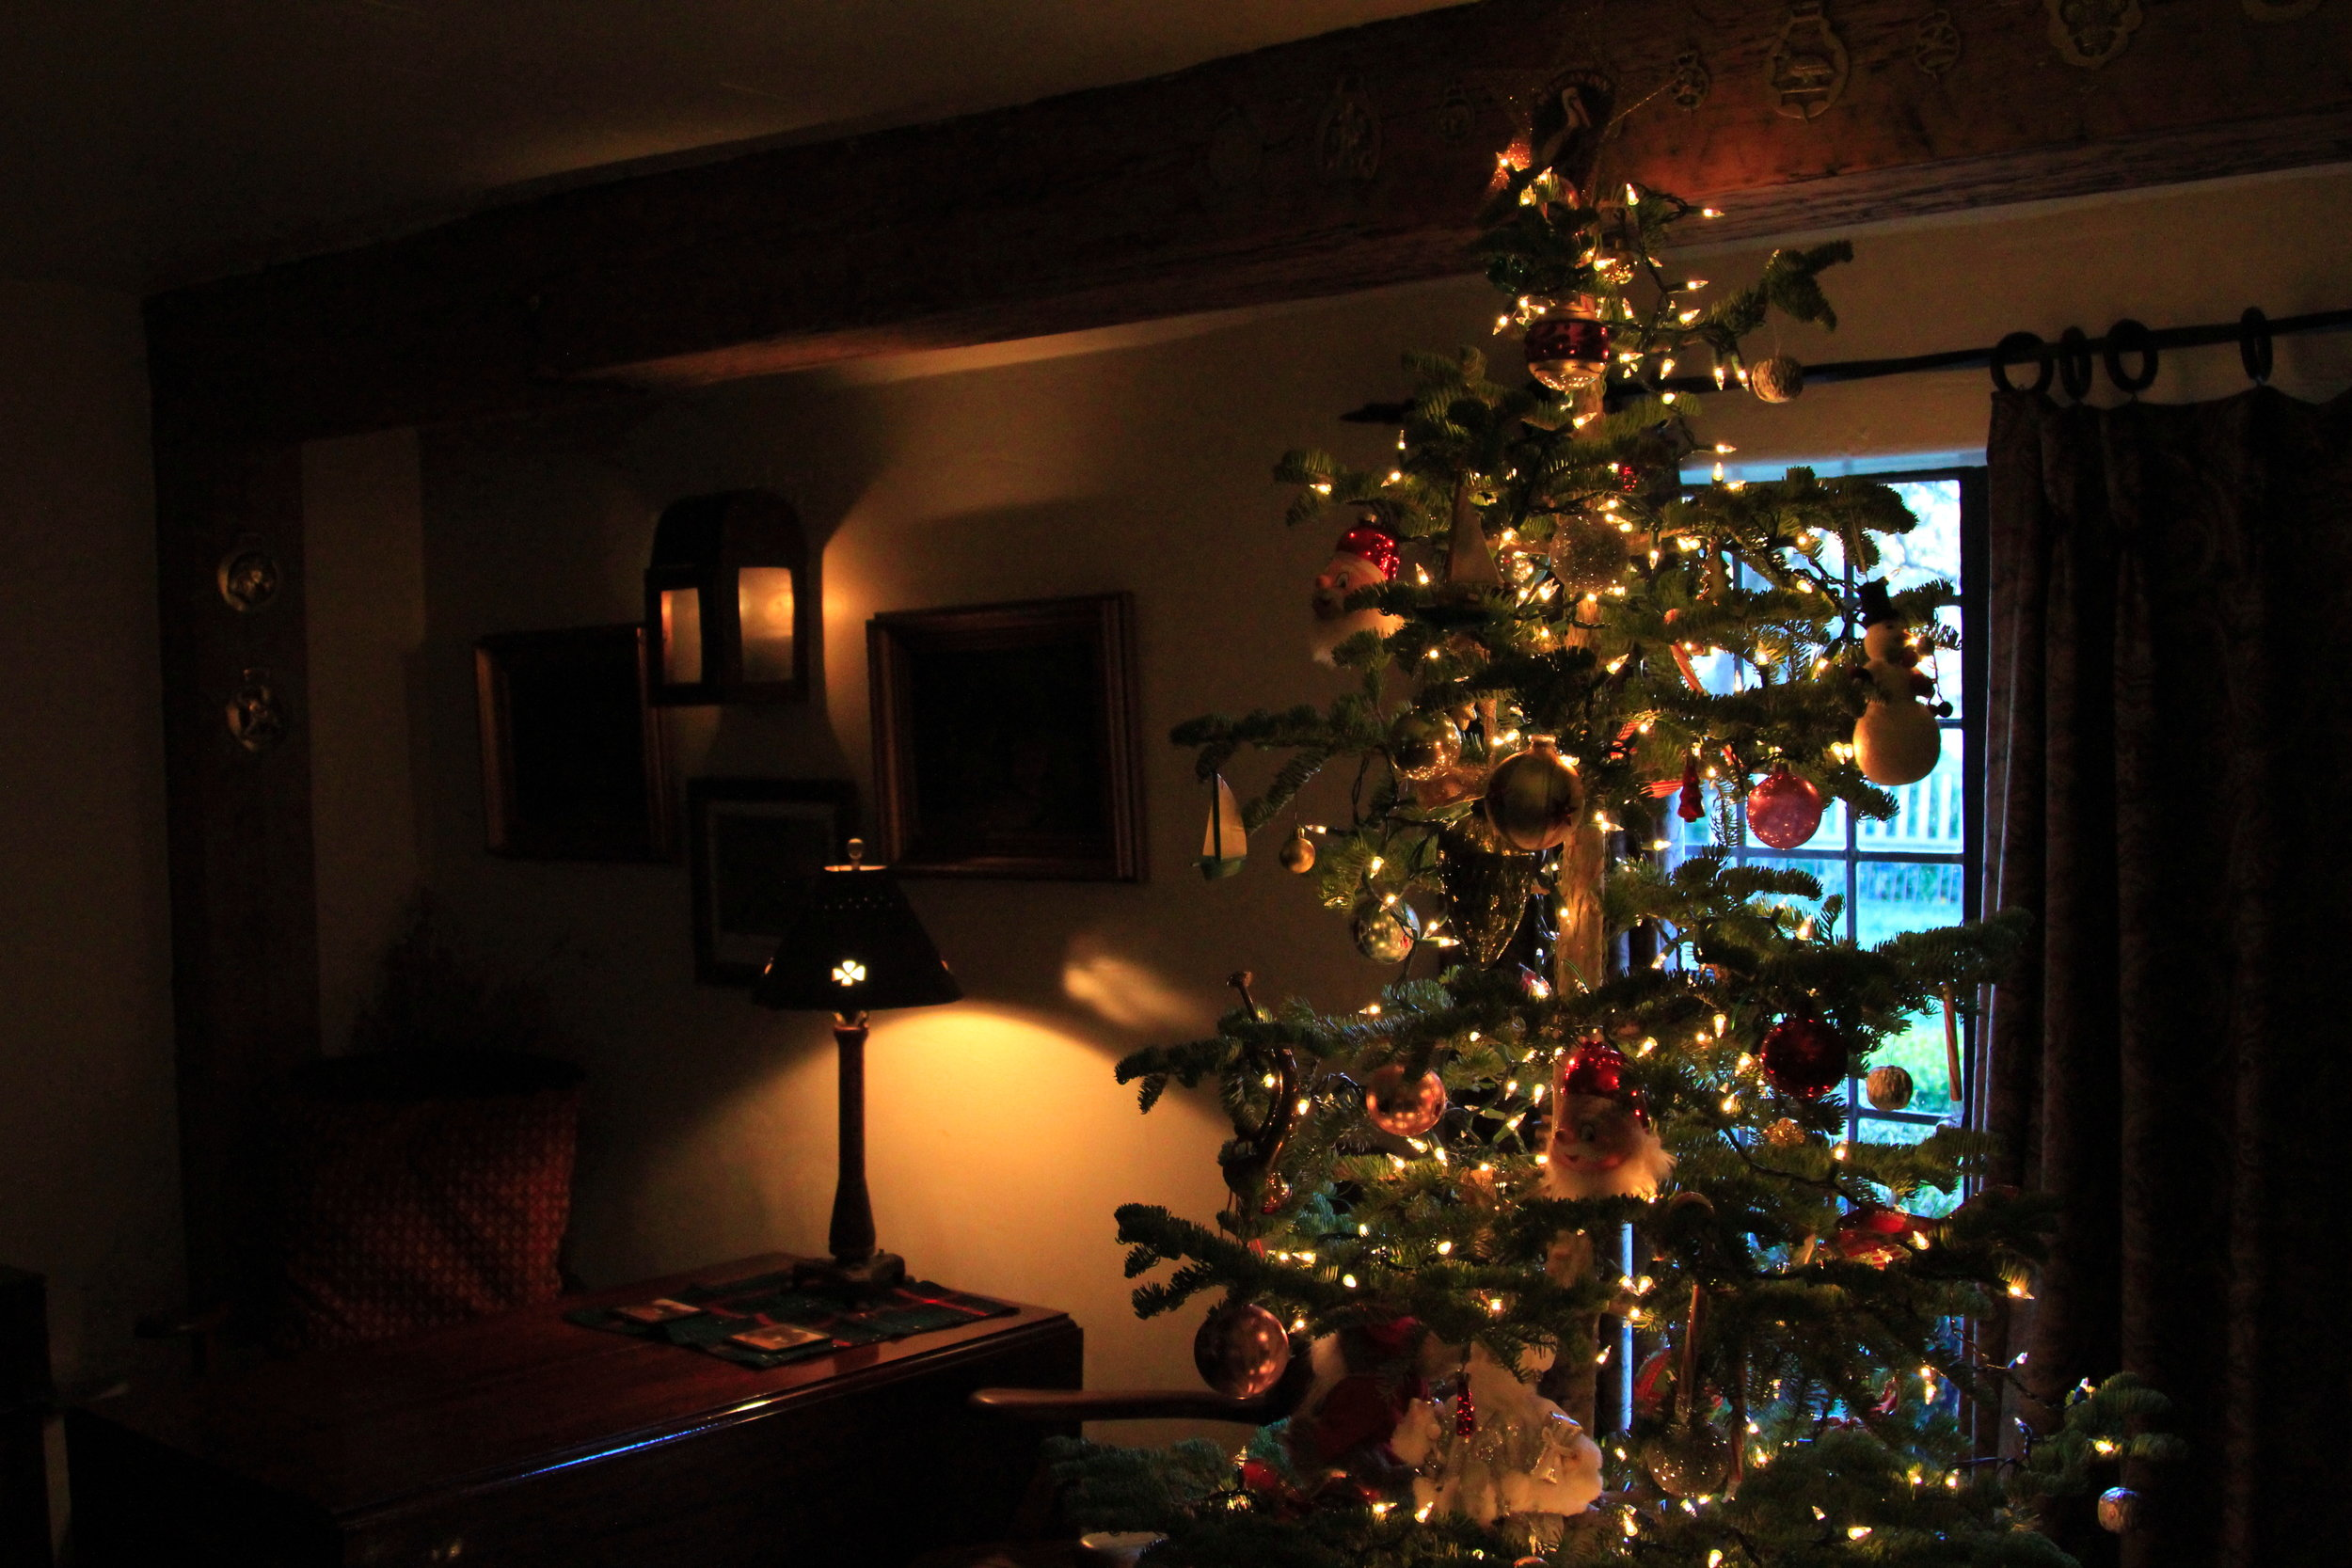 The Pelican Inn at Christmastime